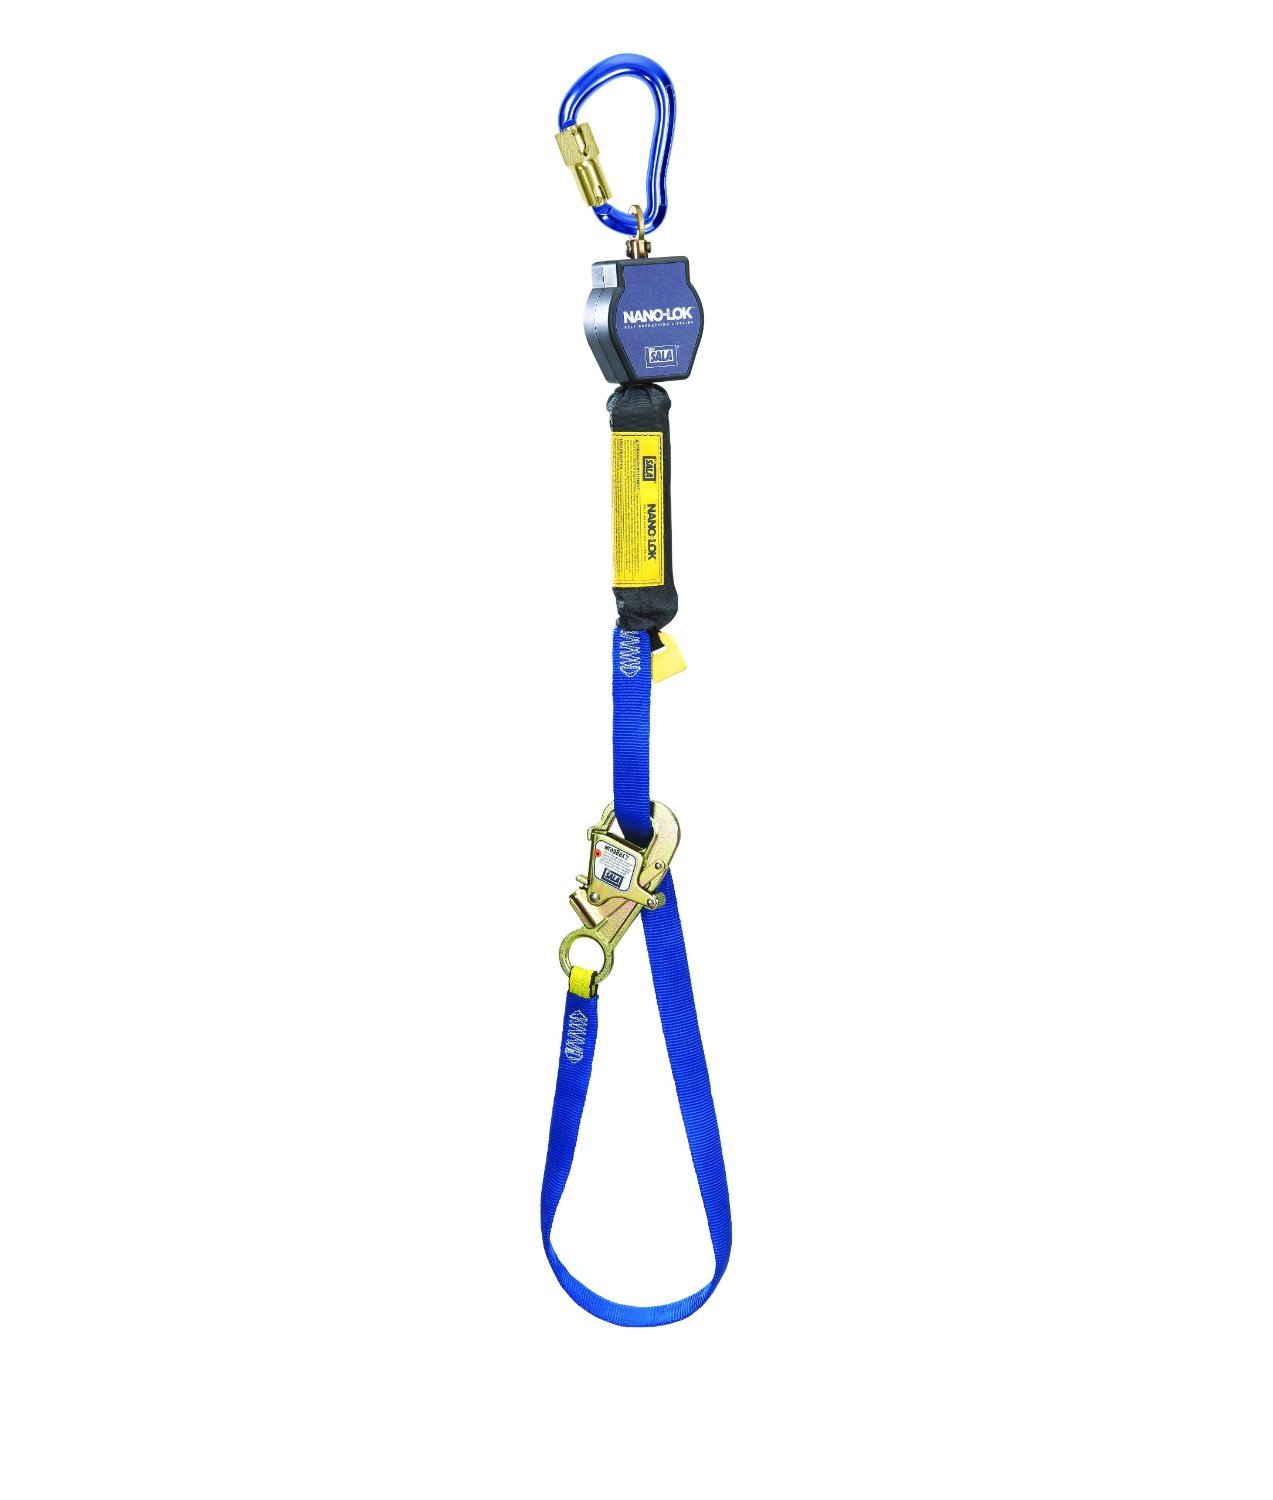 3M DBI-SALA Nano-Lok 3101365 Tie Back Self Retracting Lifeline, 9', 3/4'' Dynema Polyester Web, Tie-Back Hook, Swiveling Anchor Loop w/Alum Carabiner, Blue by 3M Personal Protective Equipment (Image #1)